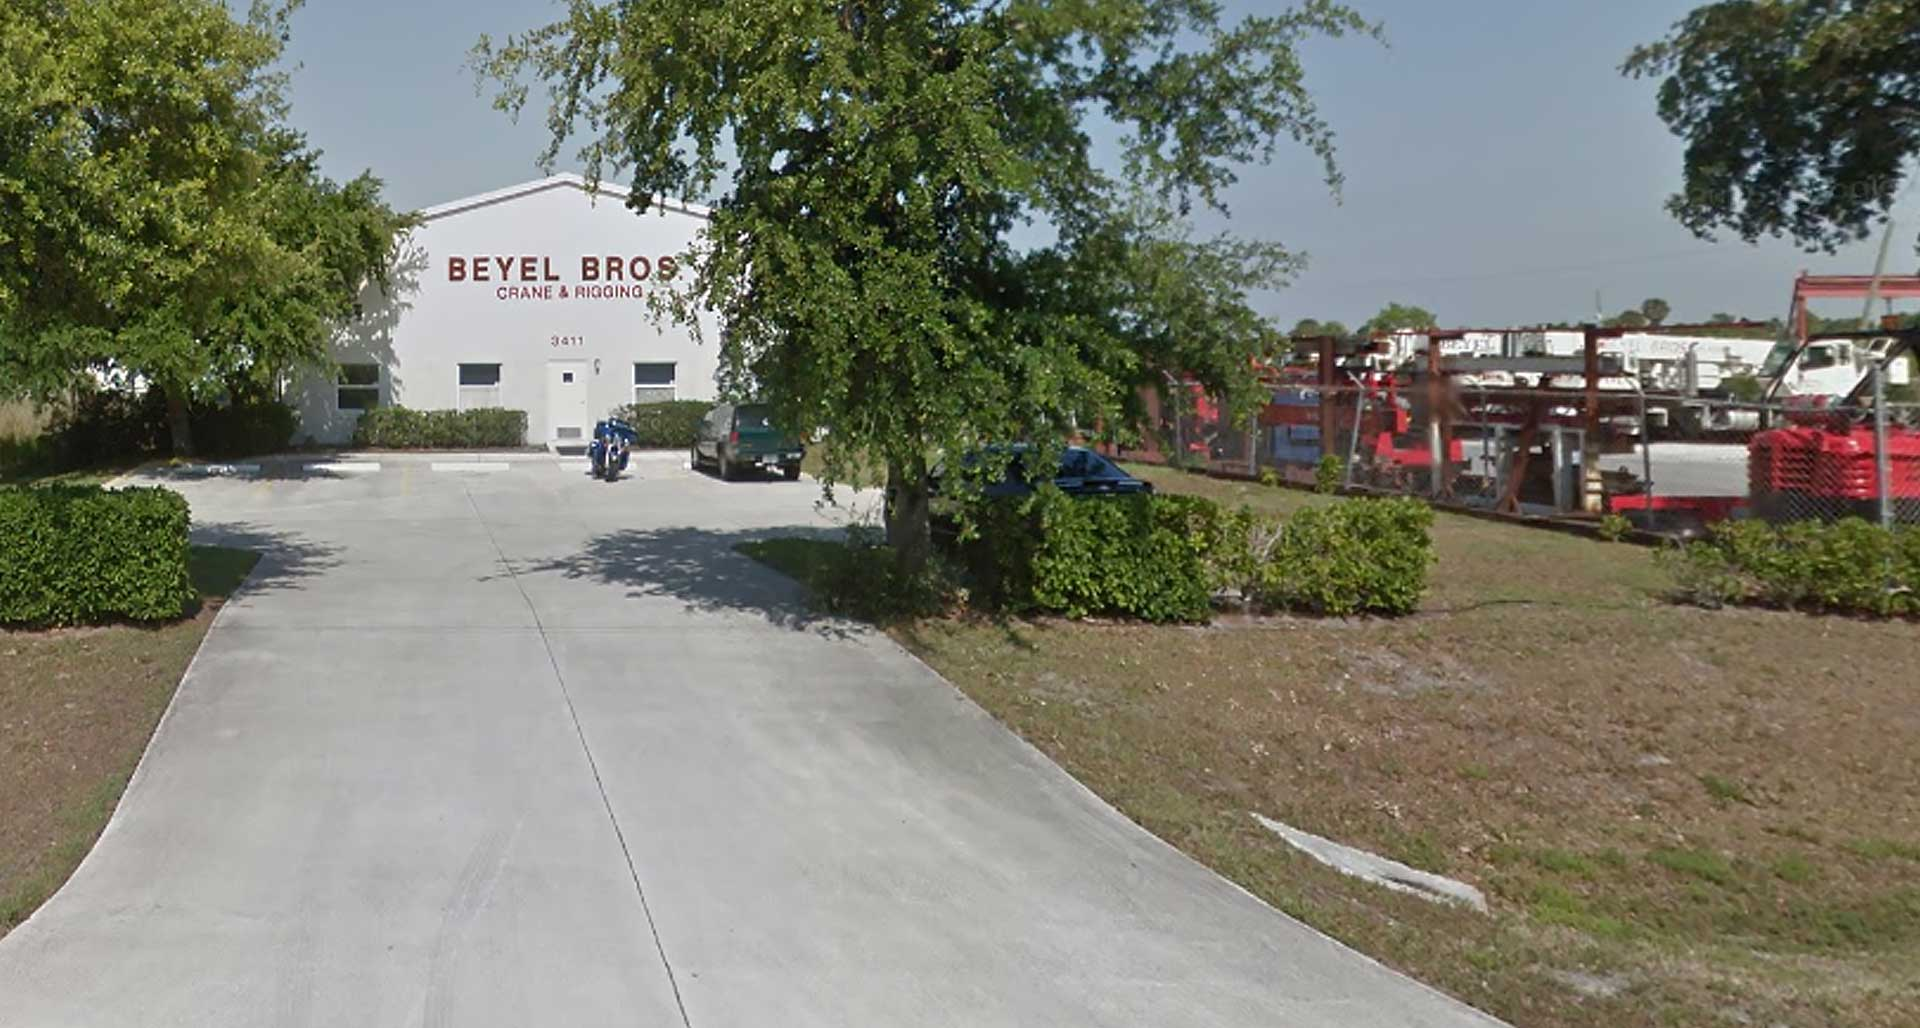 Beyel Brothers - Fort Pierce, FL - www.beyel.com